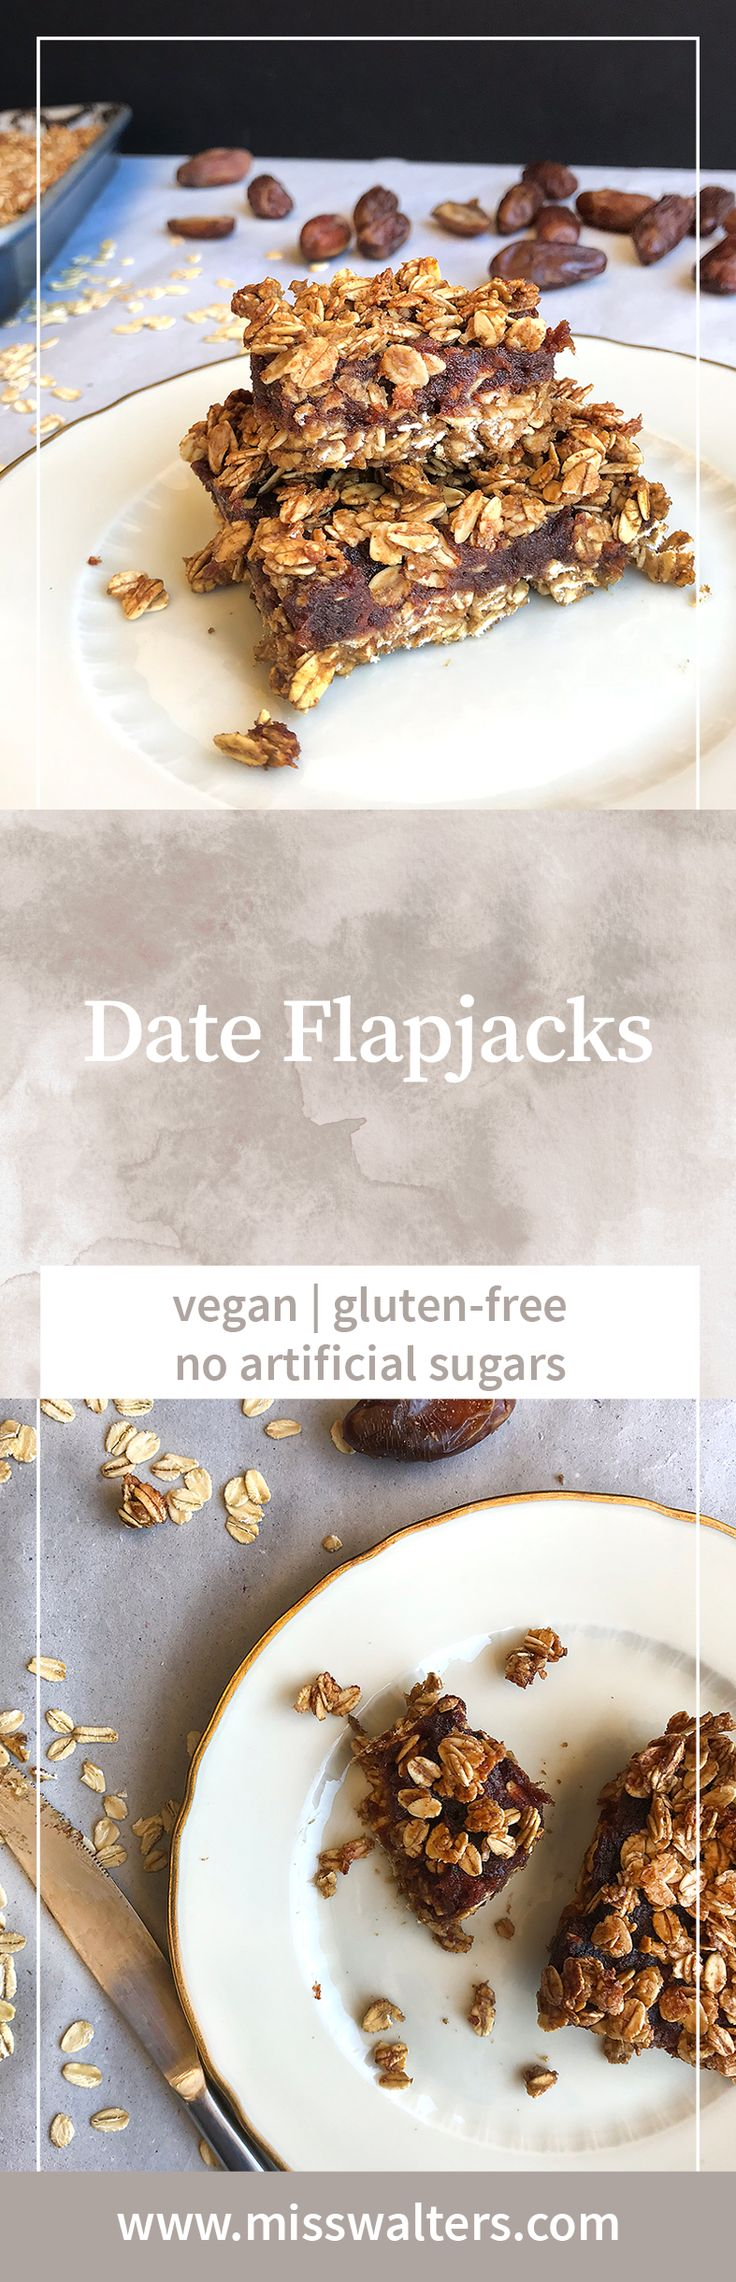 Date flapjacks are my latest food craving and make a brilliant filling snack.